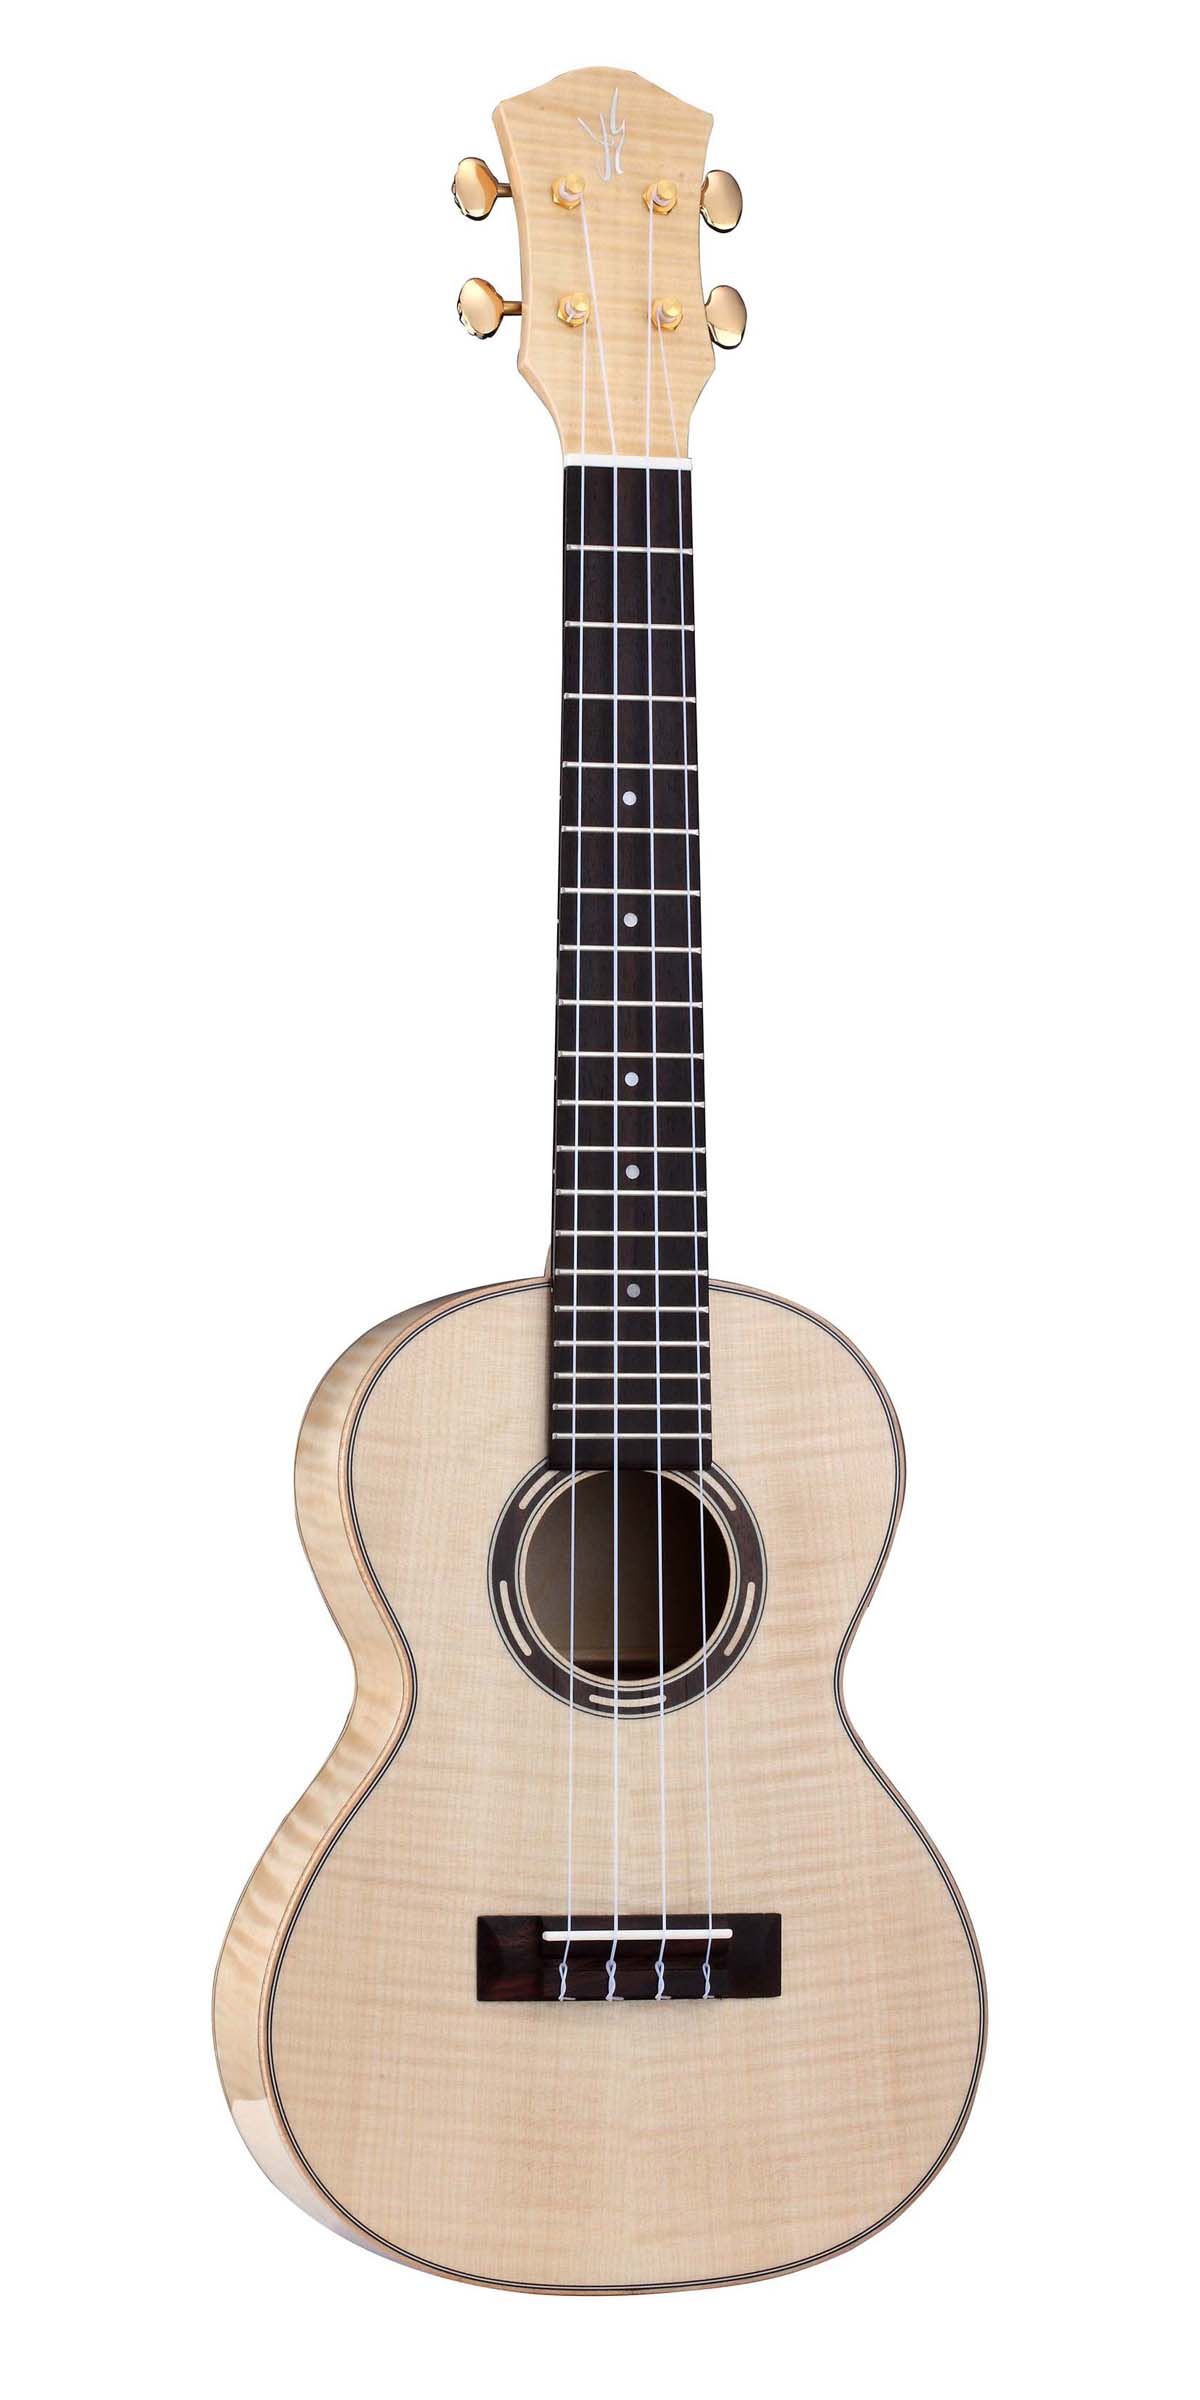 Flame Maple Plywood,Tenor Ukulele